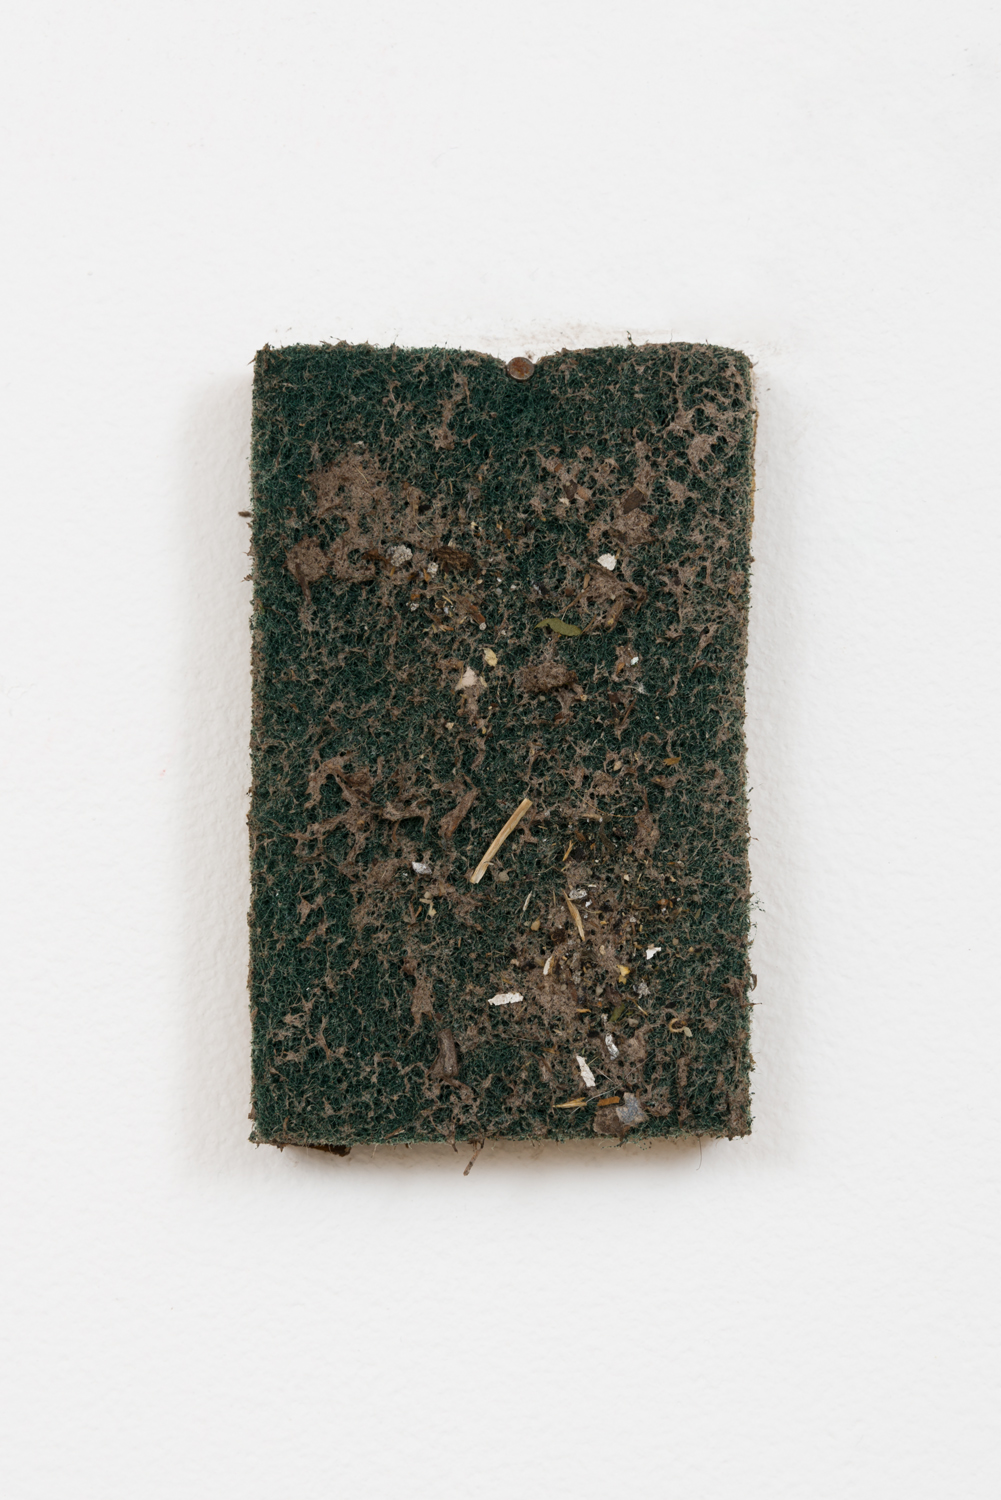 manuel arturo abreu  Untitled , 2015 sponge and grime 4 ½ x 2 ¾ x ¾ inches